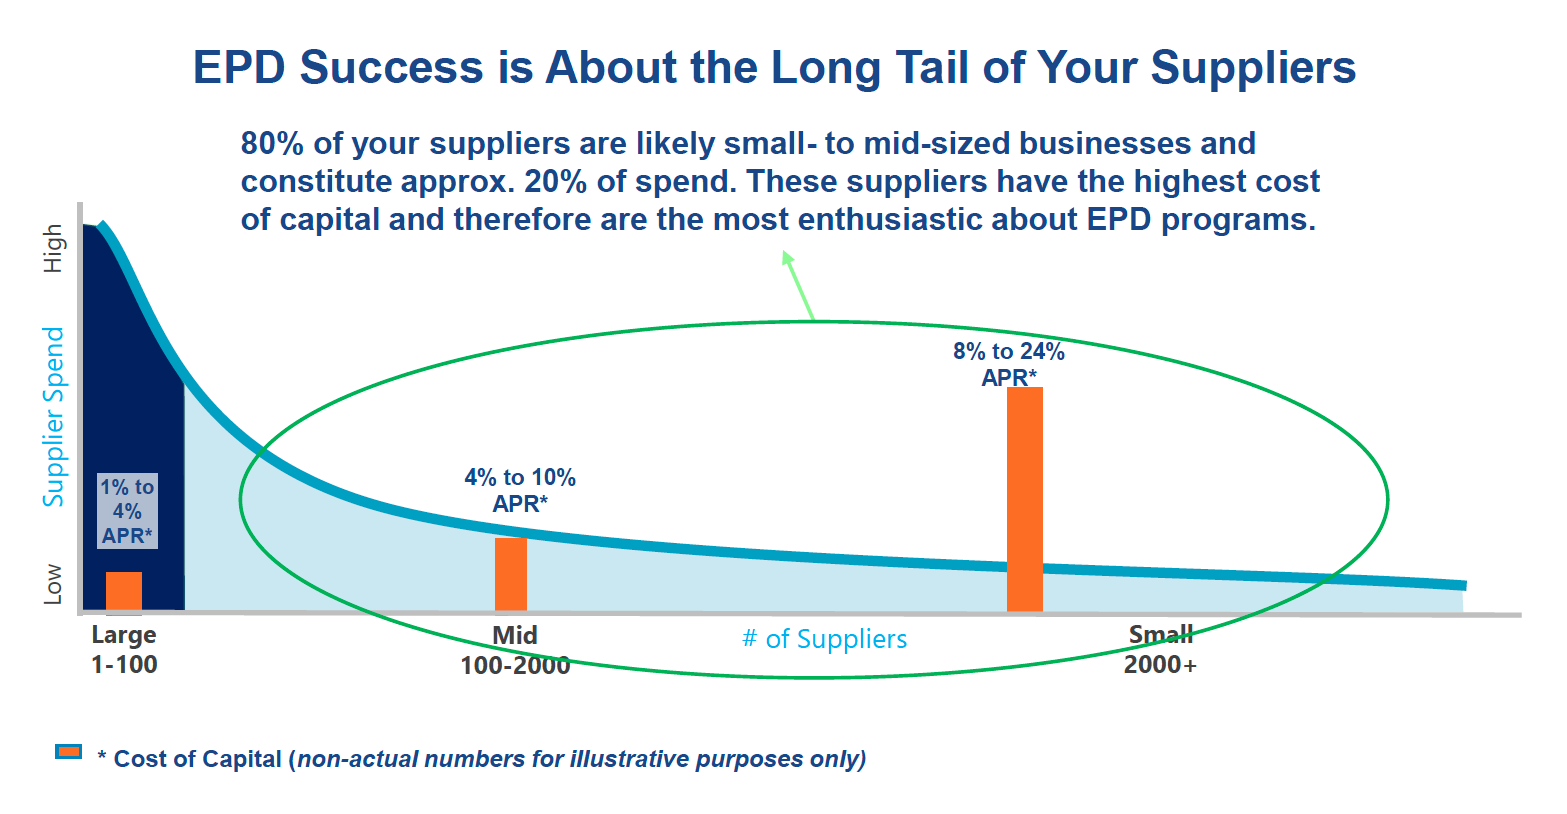 EPD Success is About the Long Tail of Your Suppliers